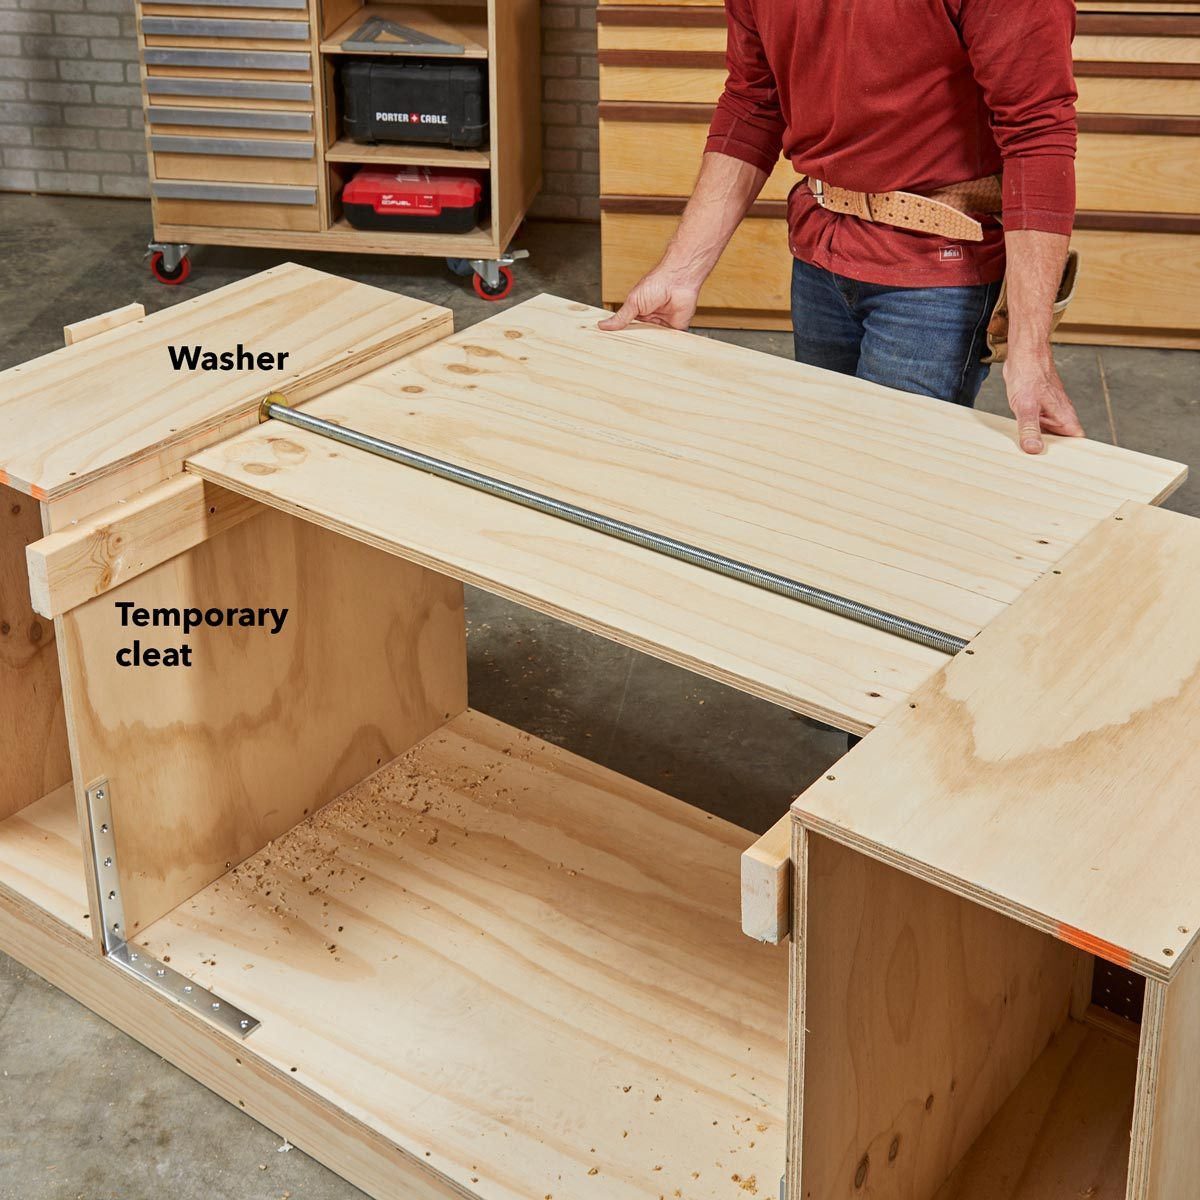 Fabulous How To Build A Space Saving Flip Top Bench The Family Handyman Andrewgaddart Wooden Chair Designs For Living Room Andrewgaddartcom